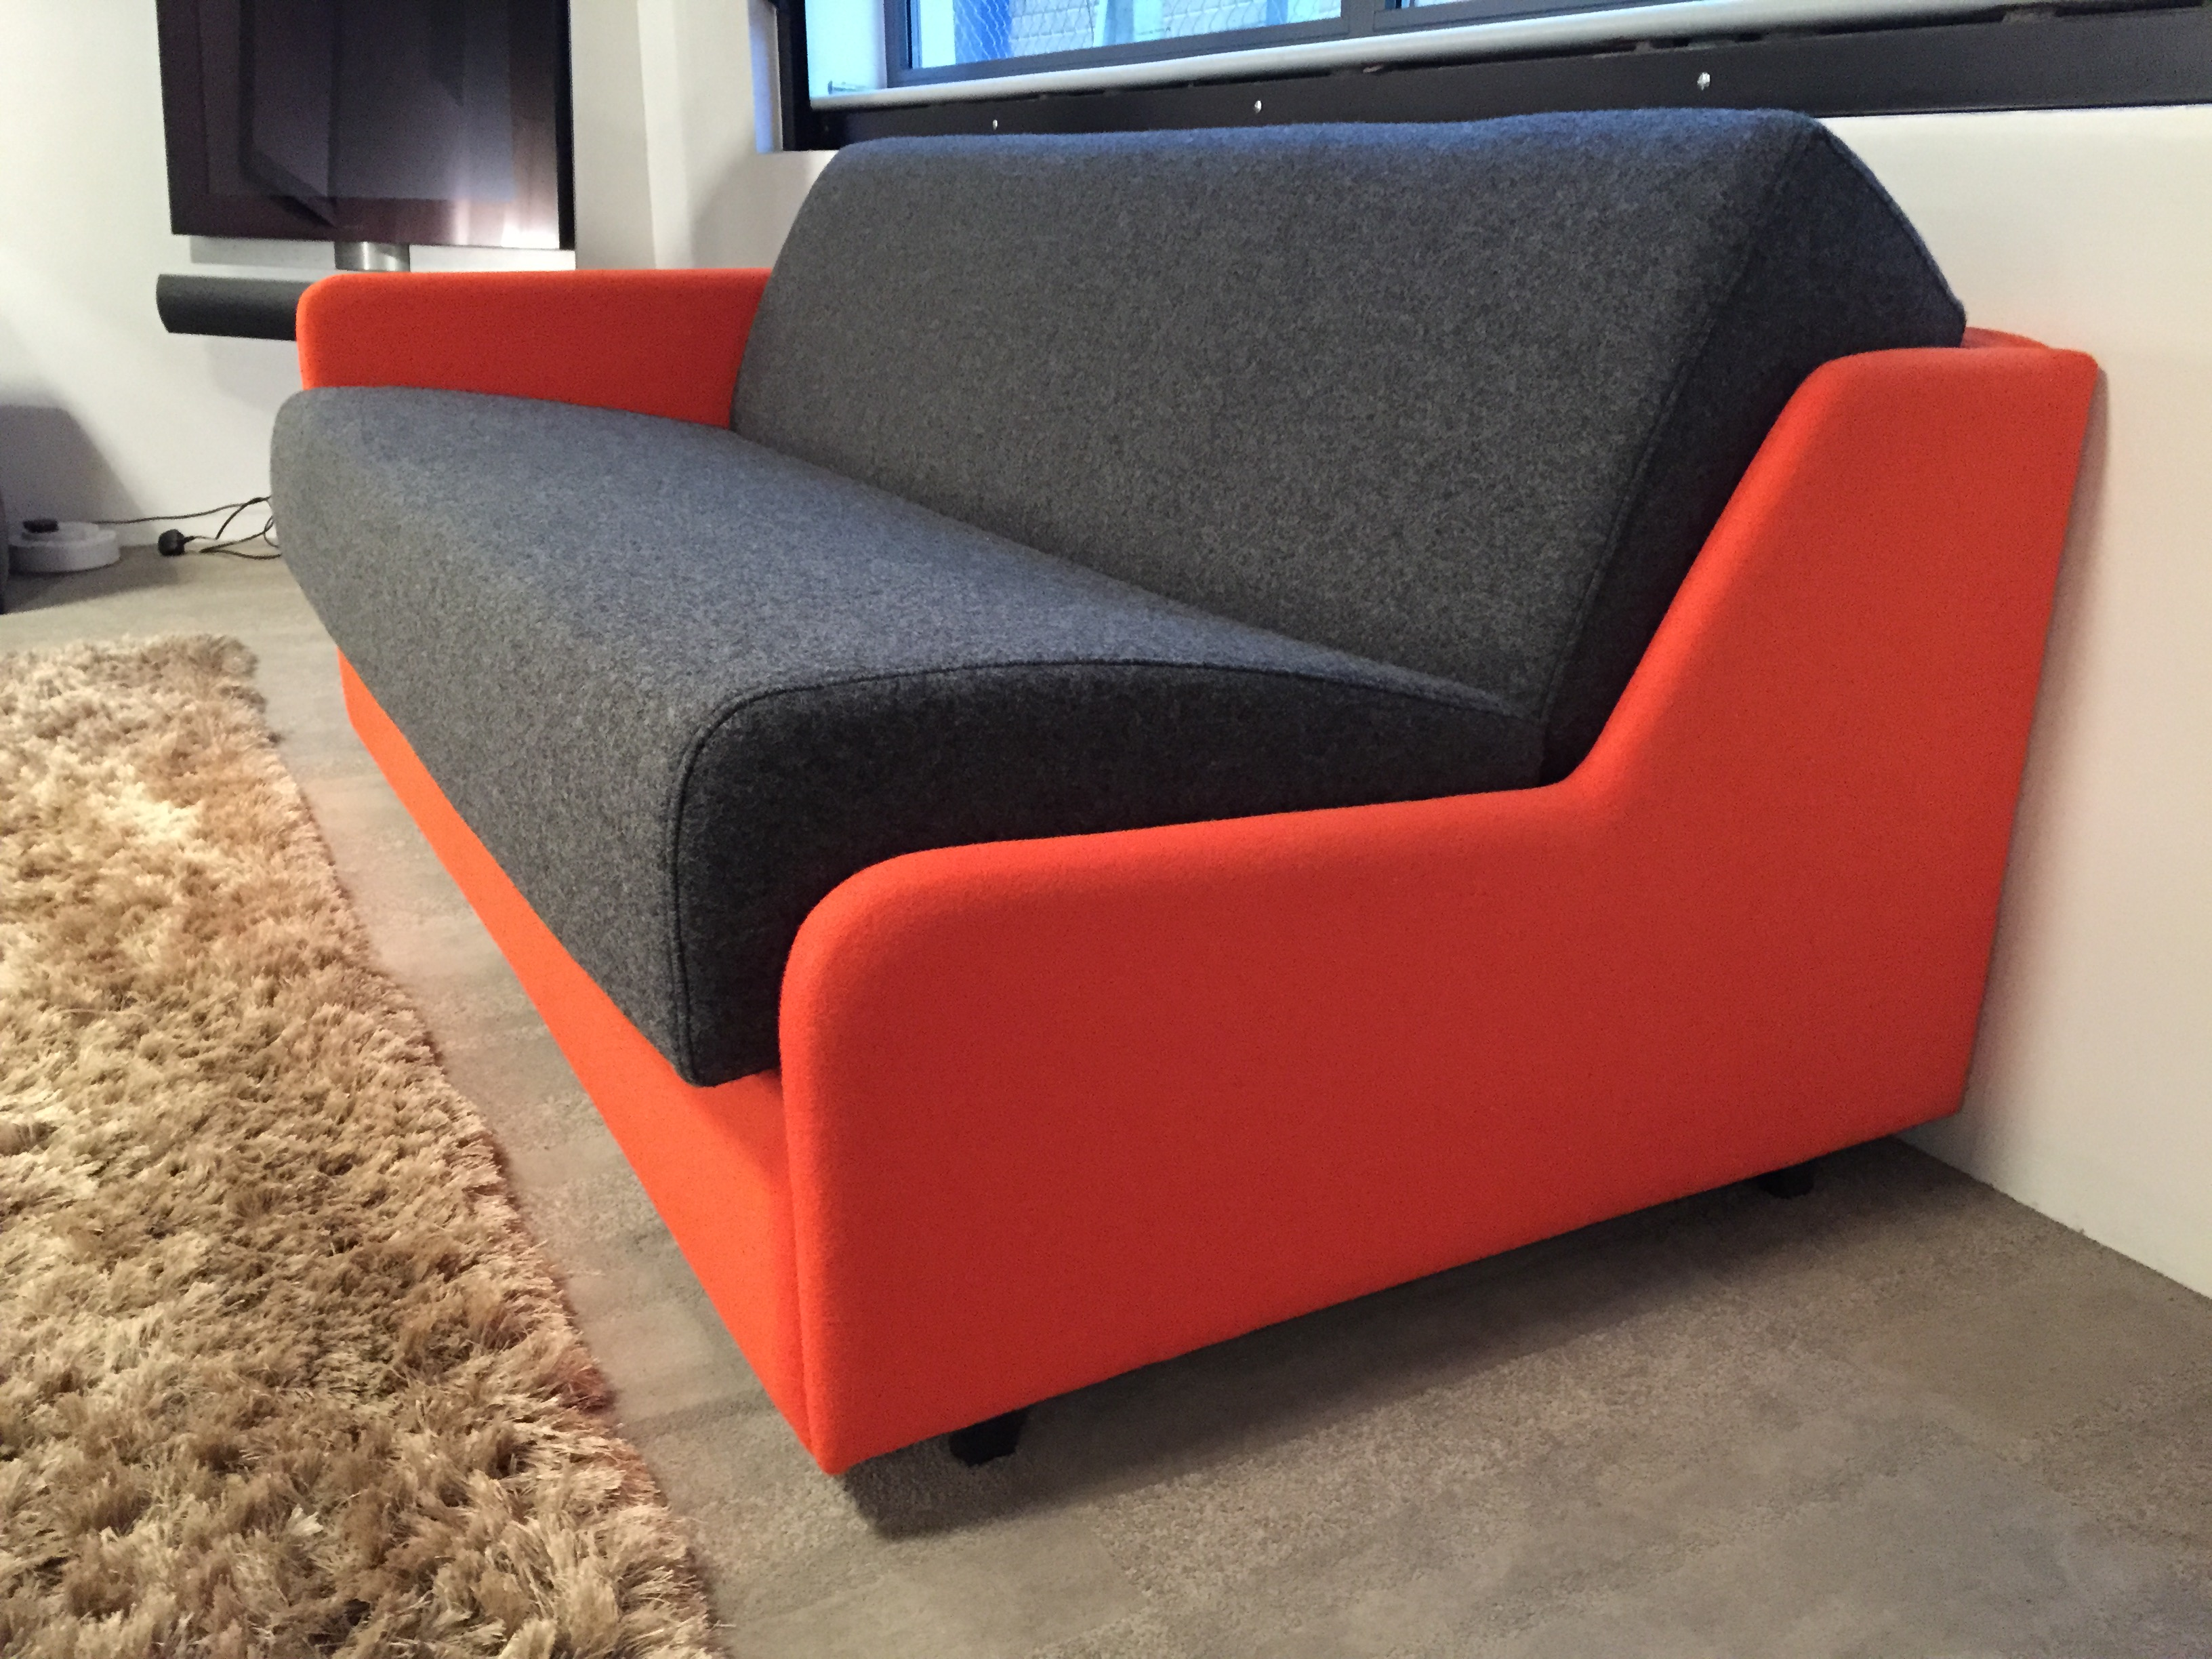 Settee No Arms Slim Sofa Bed That Is Narrow Compact And Beautiful Furl Blog